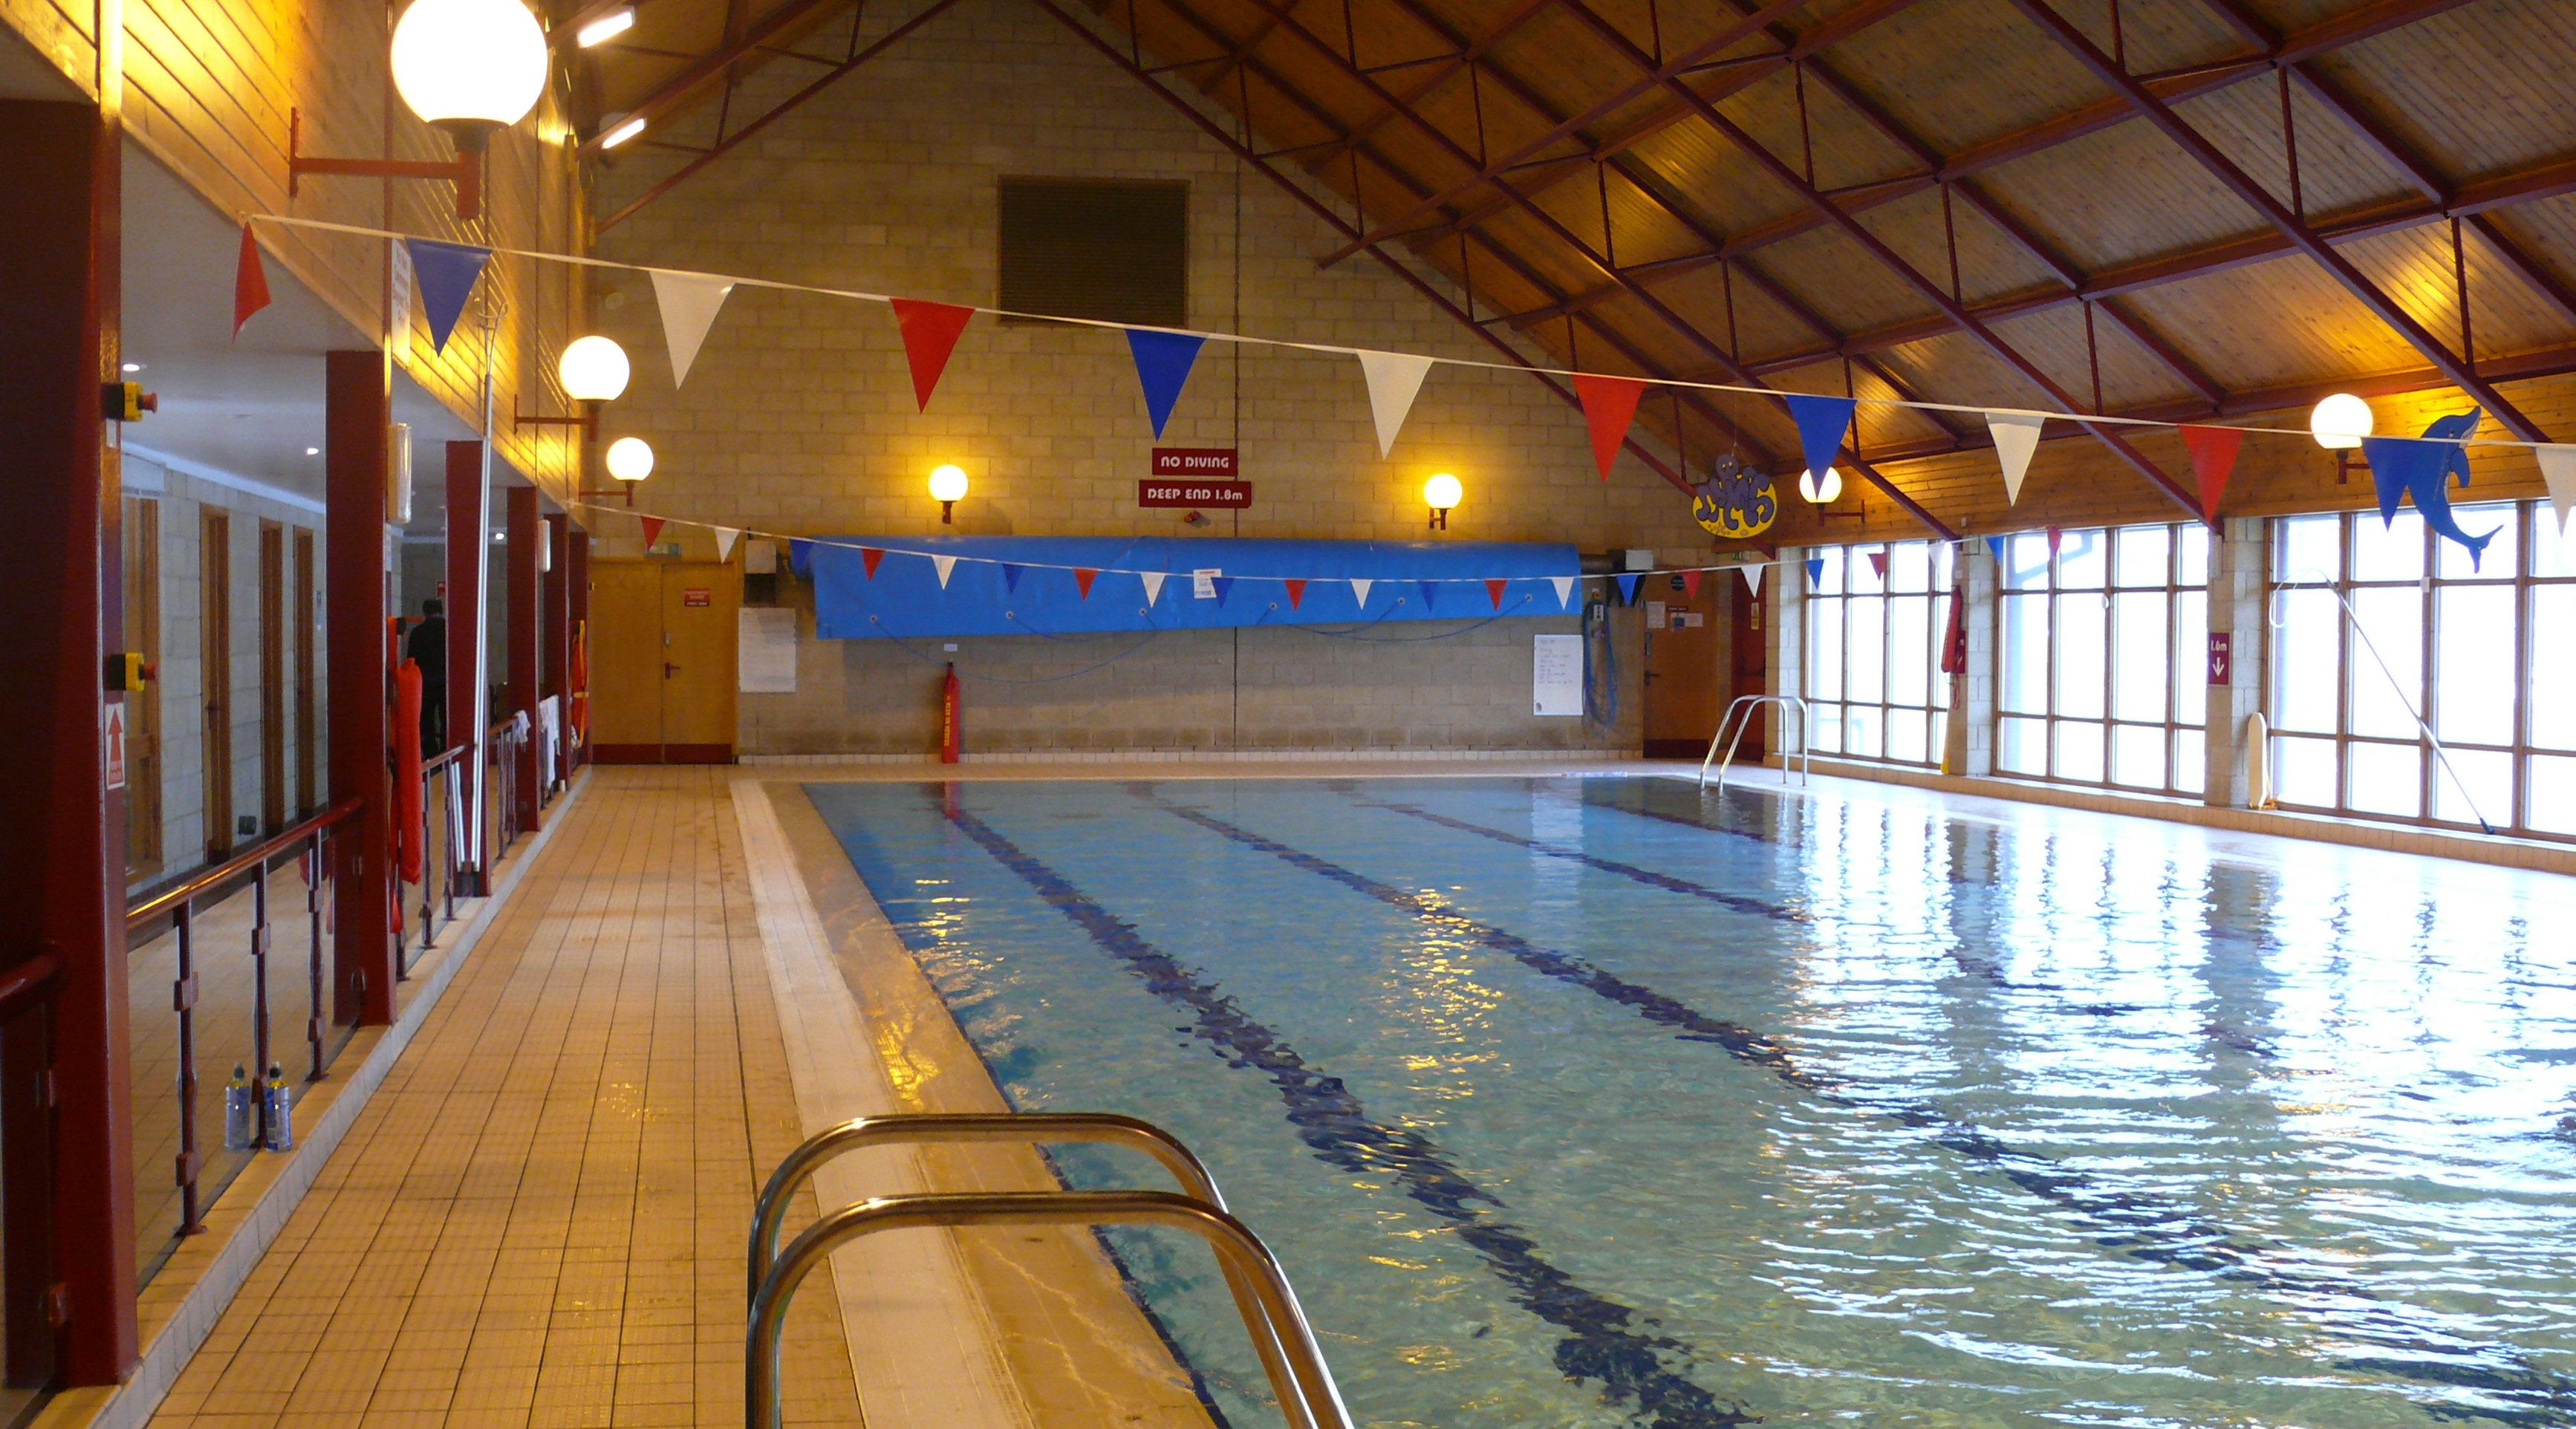 Swimming pool east caithness community facility wick - Inverness swimming pool timetable ...